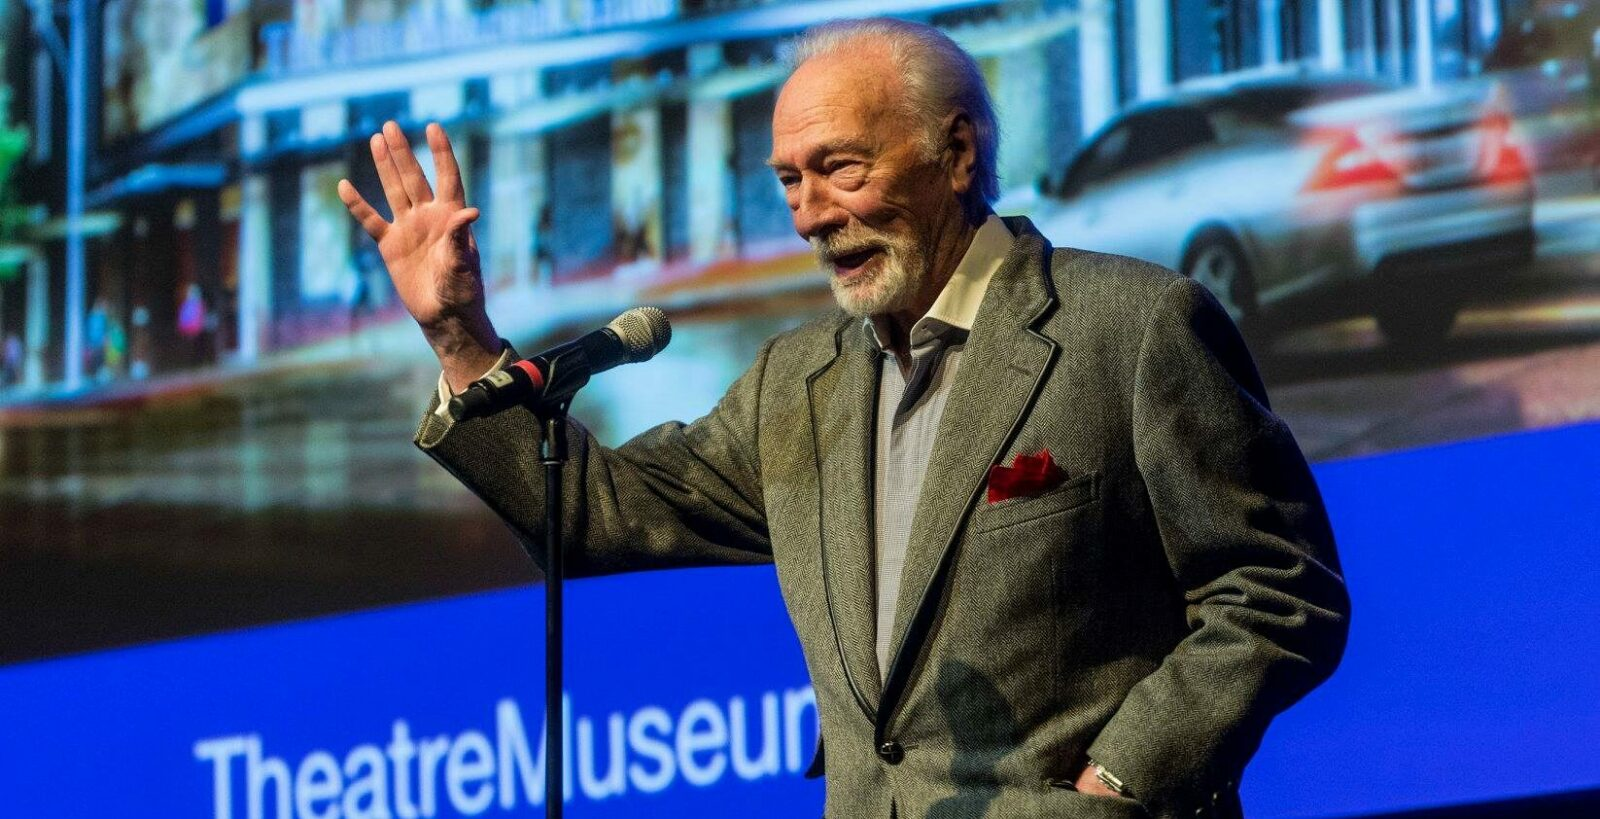 Christopher Plummer at Theatre Museum event